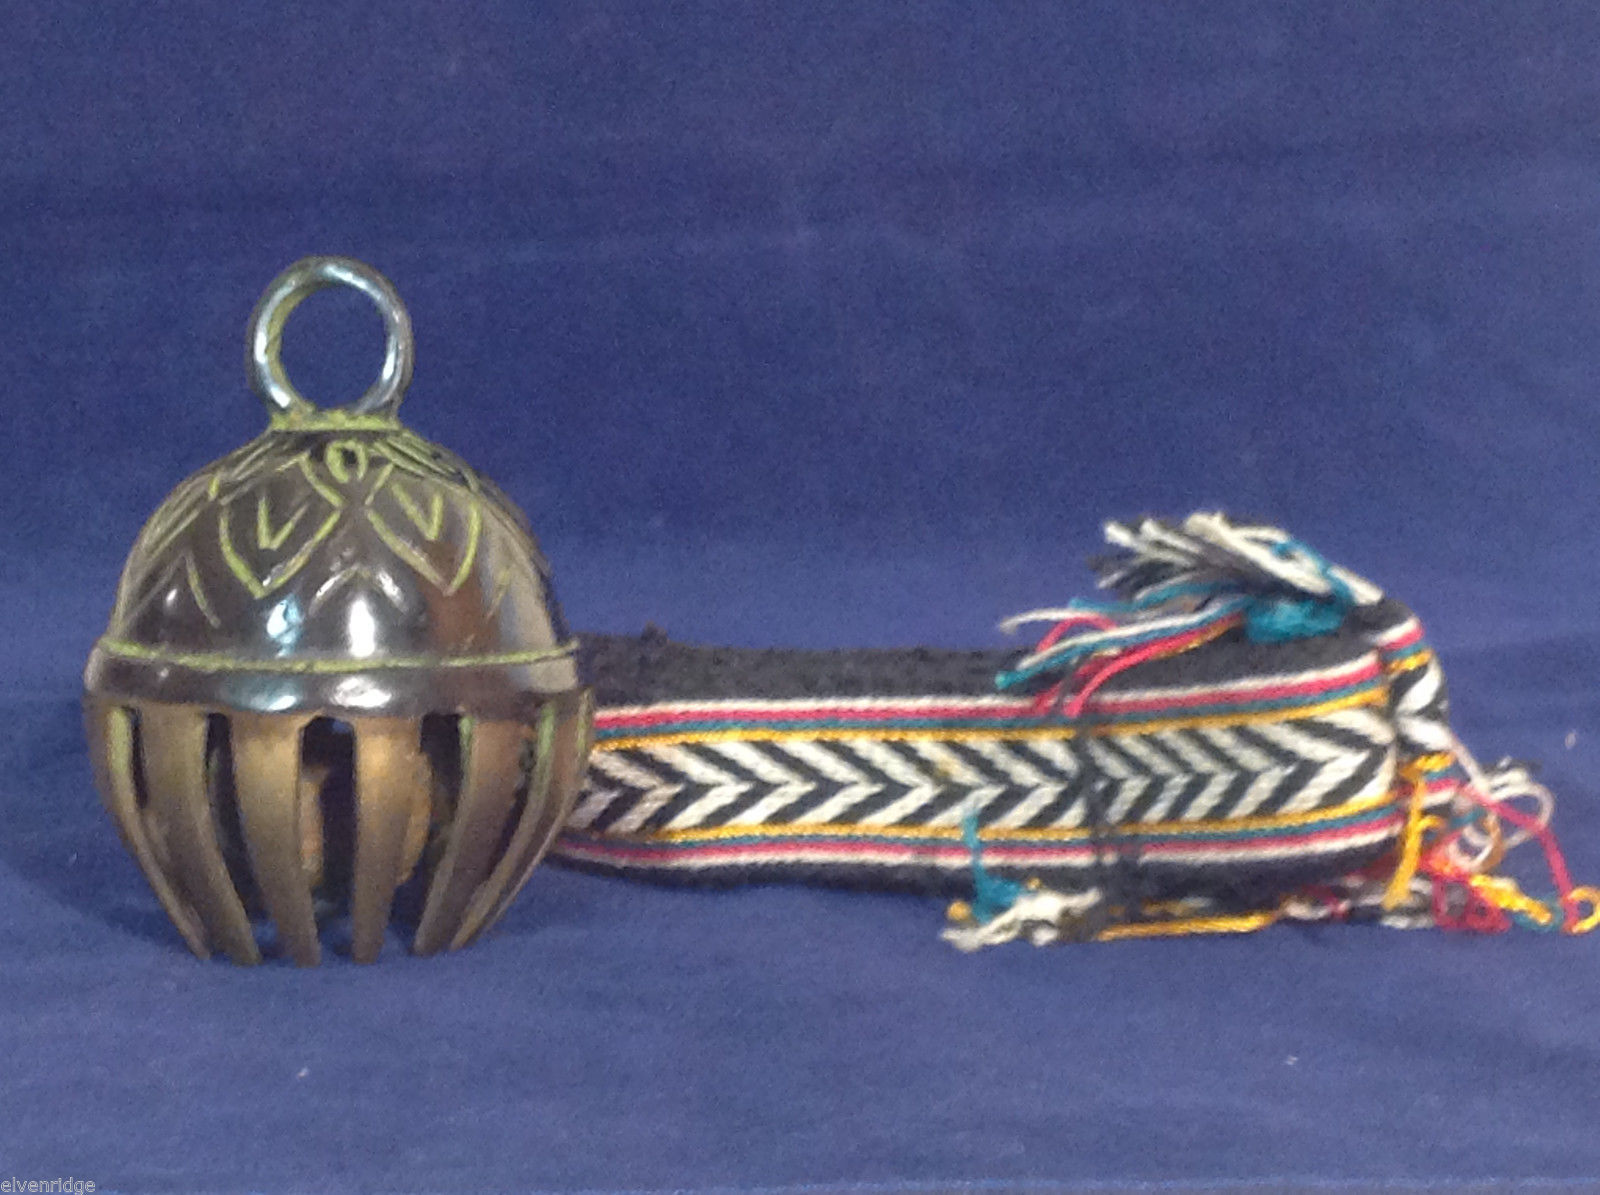 "Ornate Tibetan Cowbell Cow Bell w/ Colorful Hand-Woven Strap 3.5"" x 7"" #1"